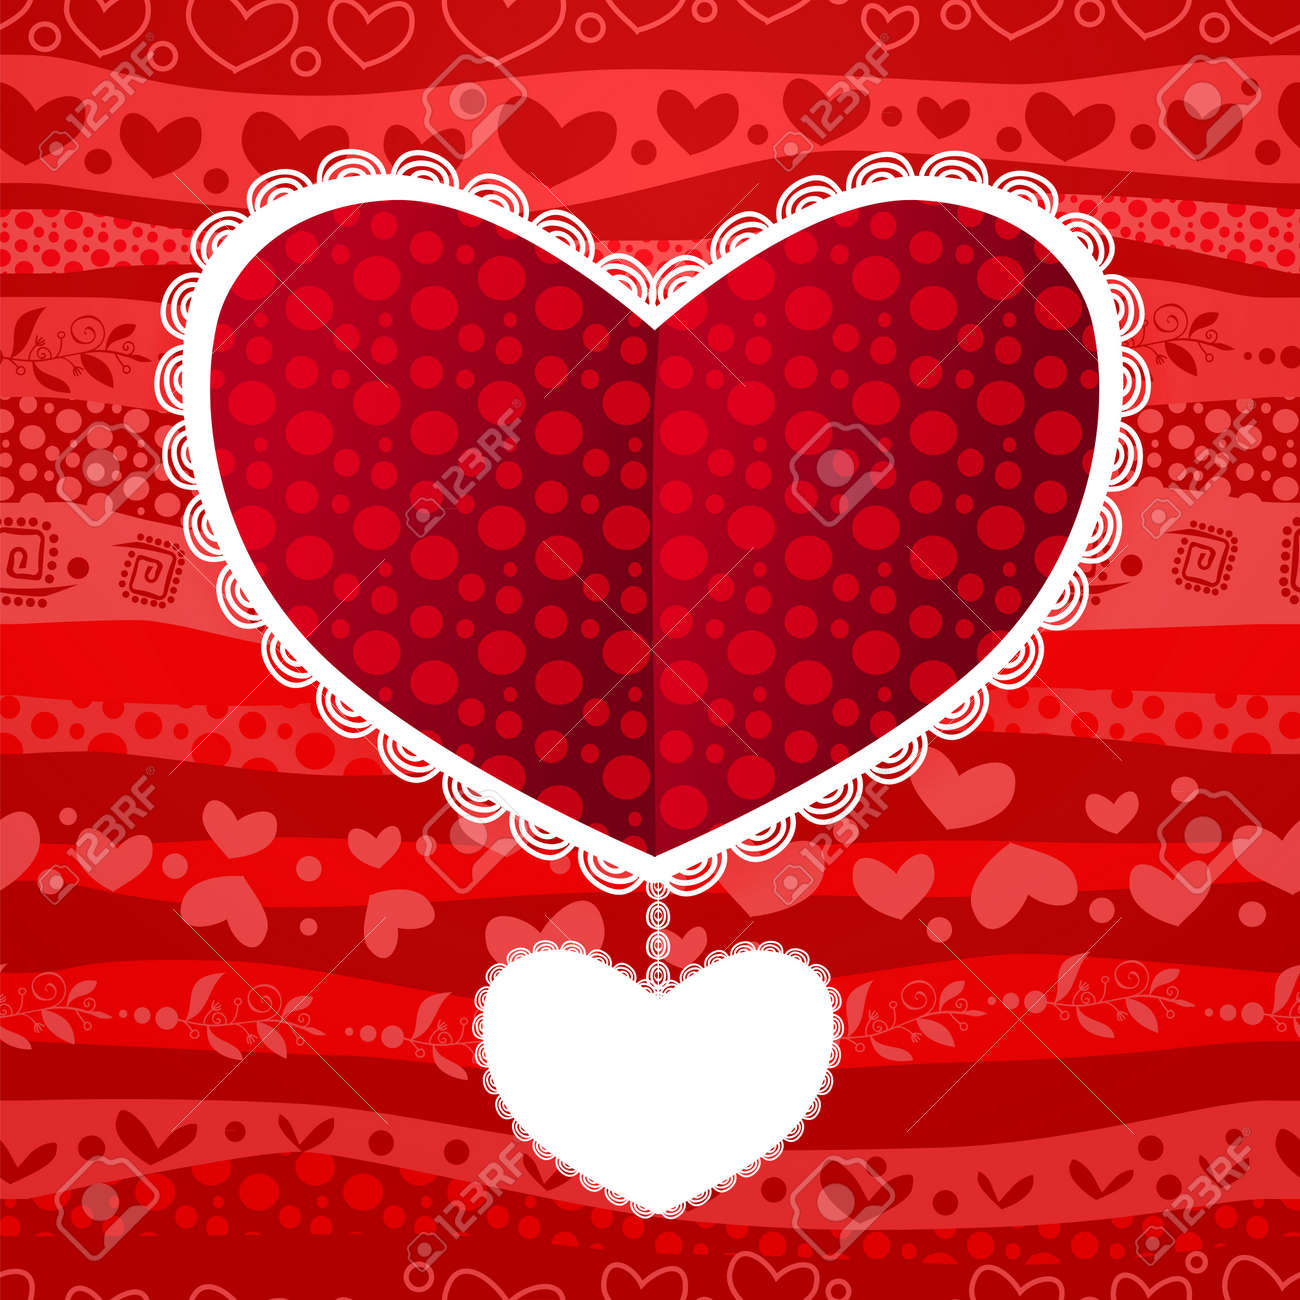 Love Valentine's Day Wedding Heart Card on Waves Seamless Background Stock Vector - 17294057